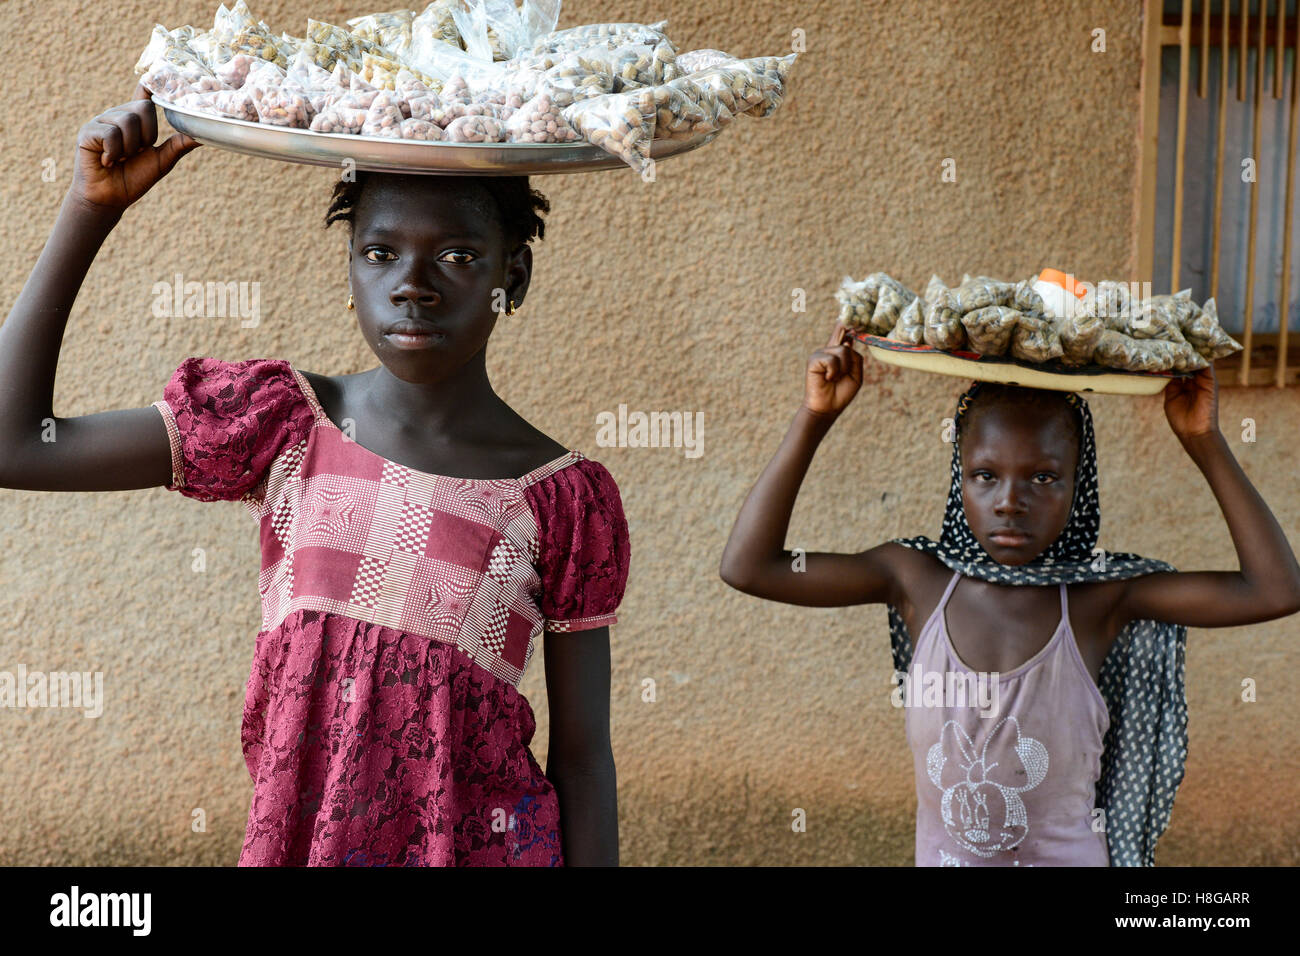 BURKINA FASO, Bobo Dioulasso, child labour, girl sell nuts / Kinderarbeit, Maedchen verkauft Erdnuesse Stock Photo